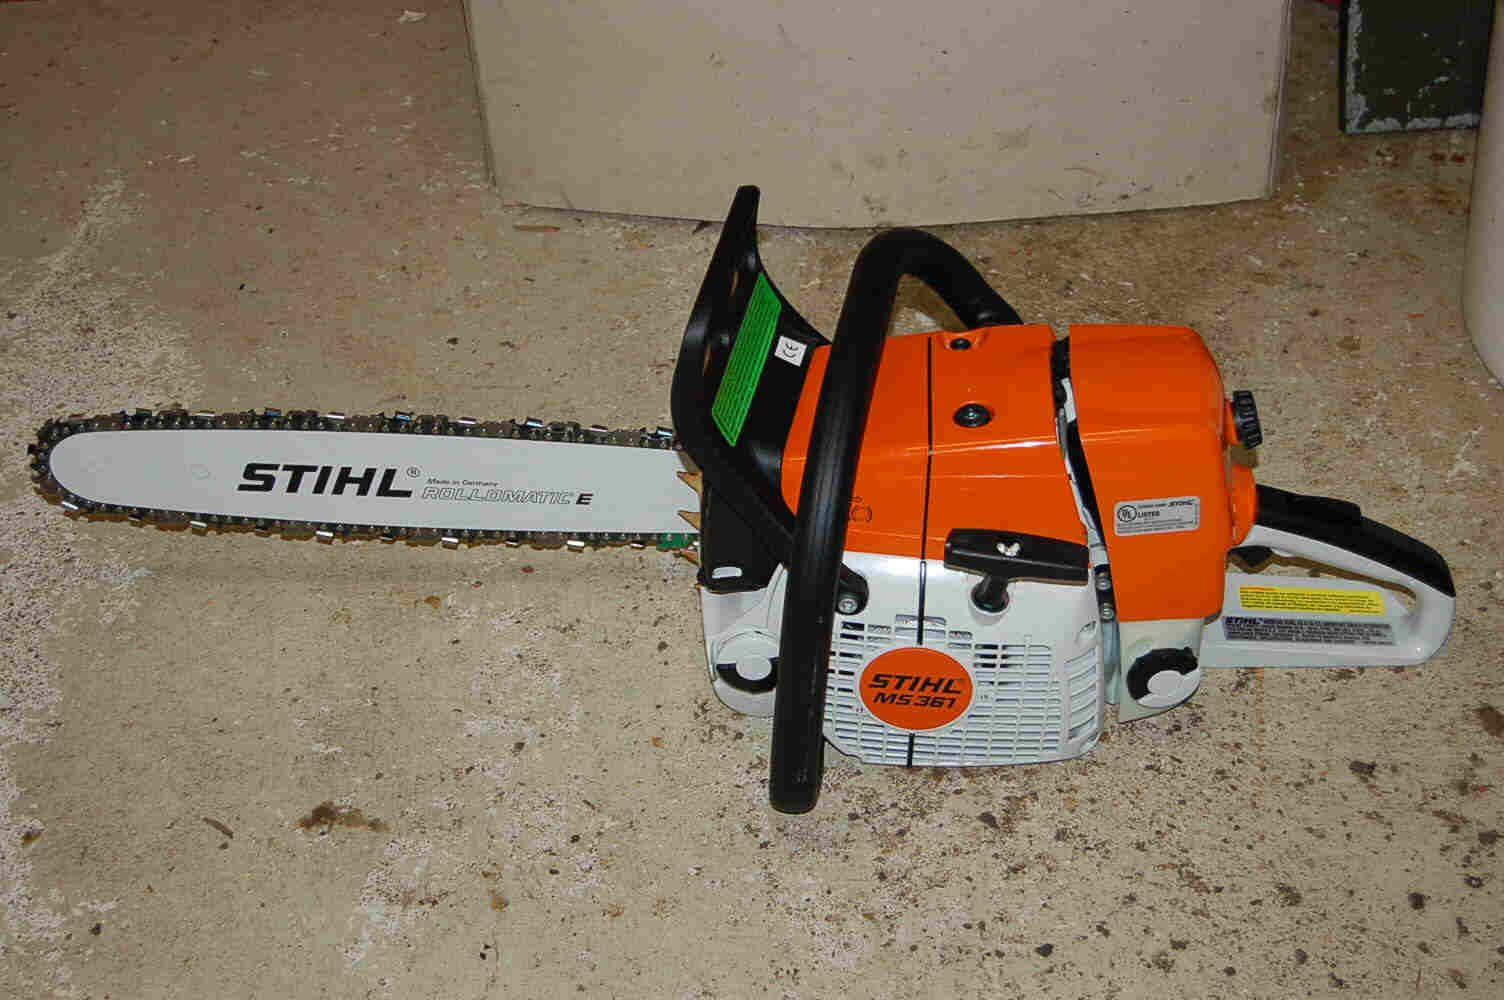 Firewood With A Stihl 361 Chainsaw I Own Several